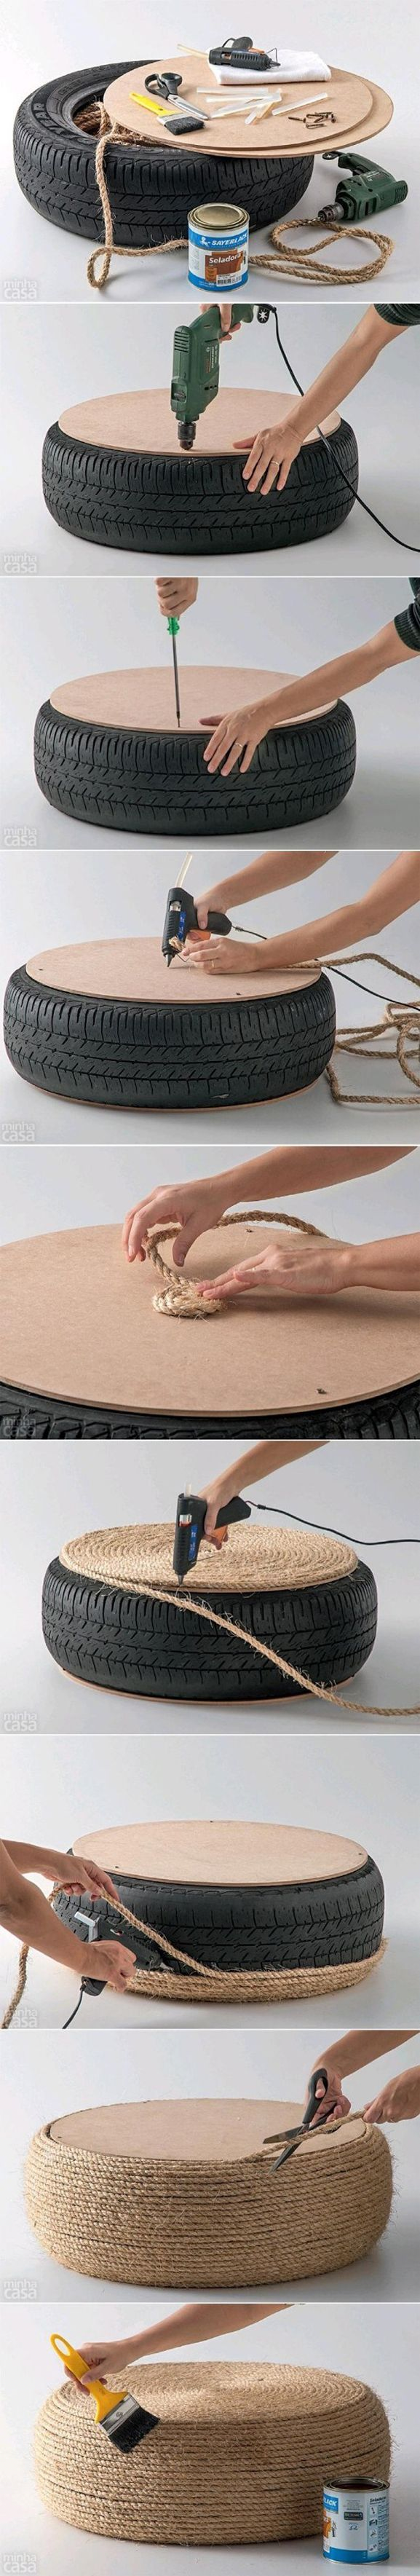 Recycle a tire and transform it into an ingenious ottoman